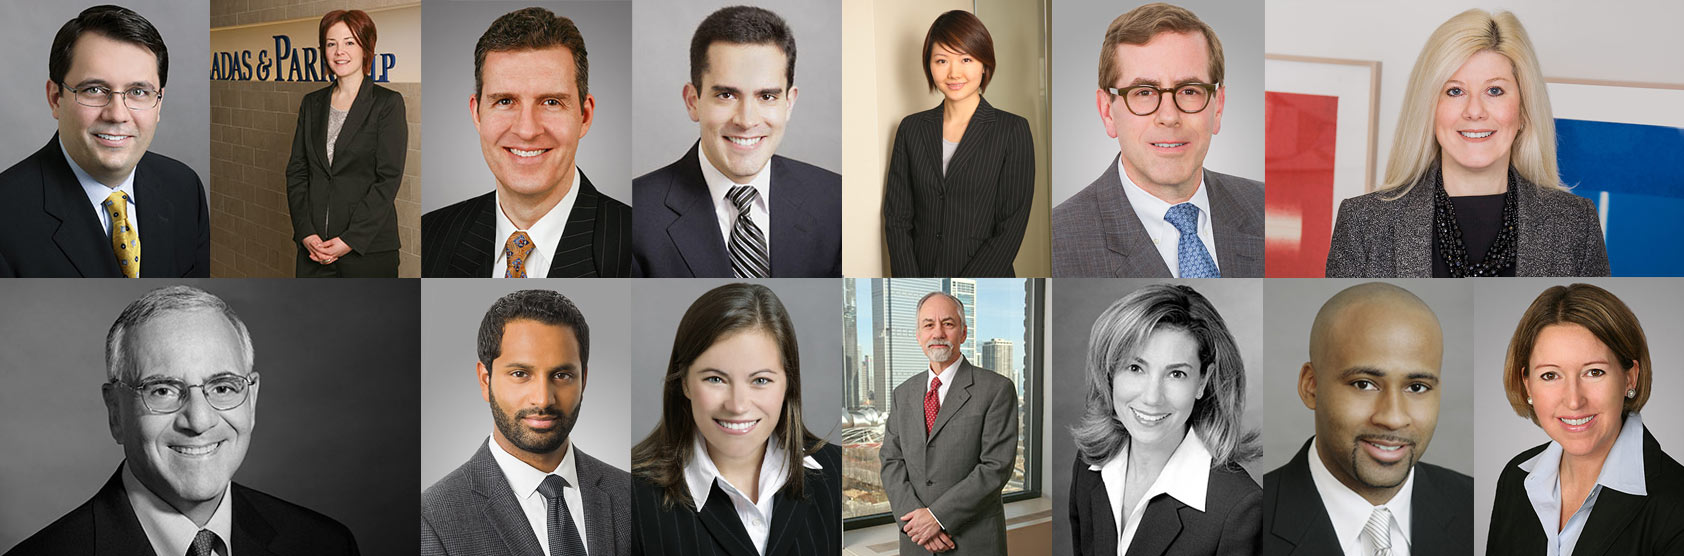 Portraits of Chicago Lawyers